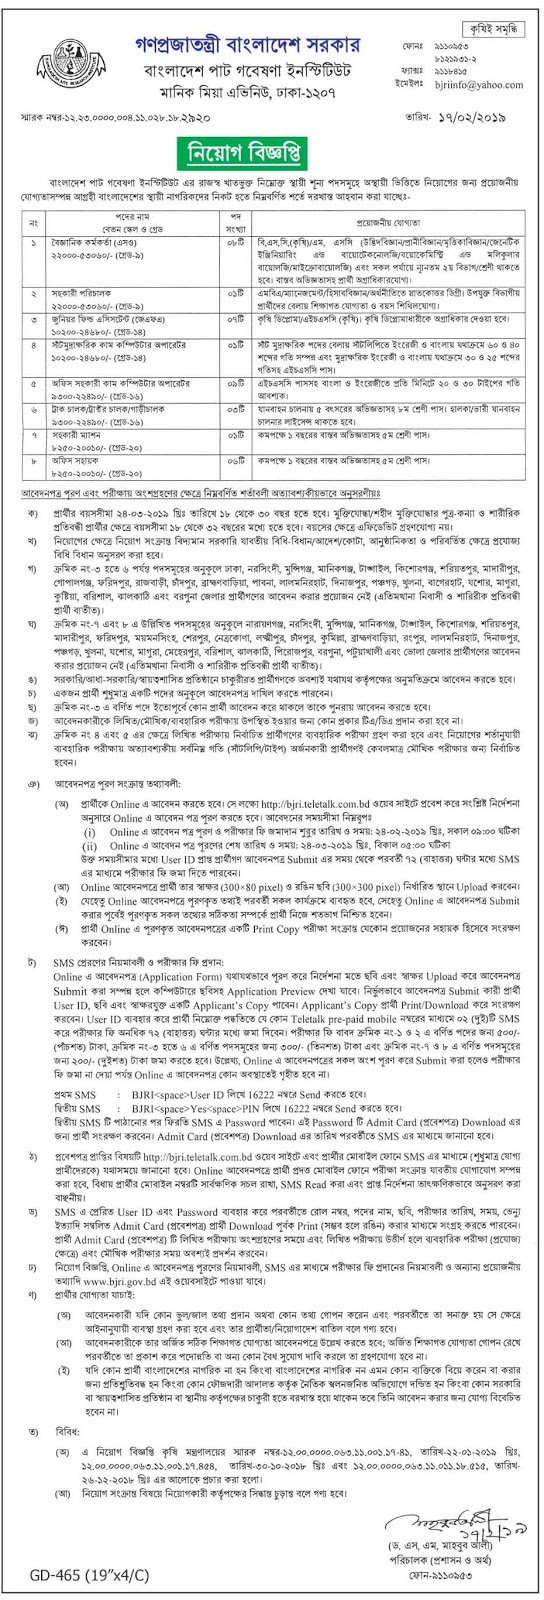 Bangladesh Jute Research Institute Job Circular 2019